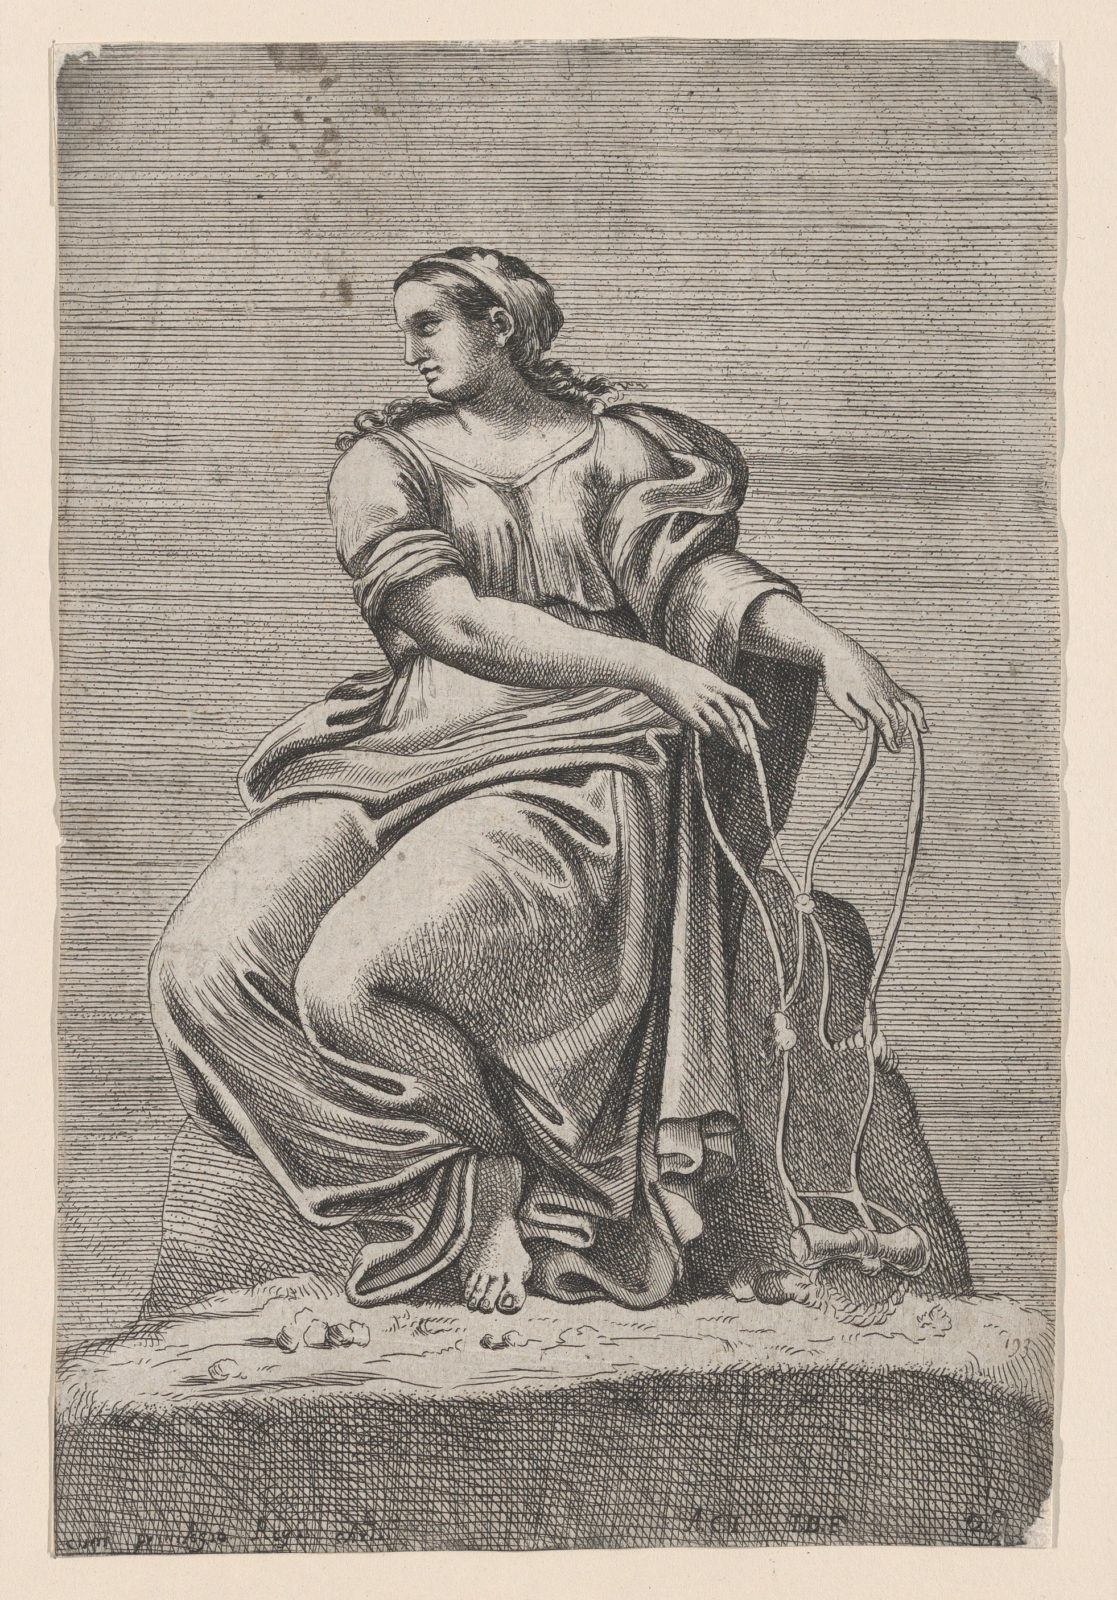 Seated Figure of Justice, from Farnese Palace, after Annibale and Agostino Carracci